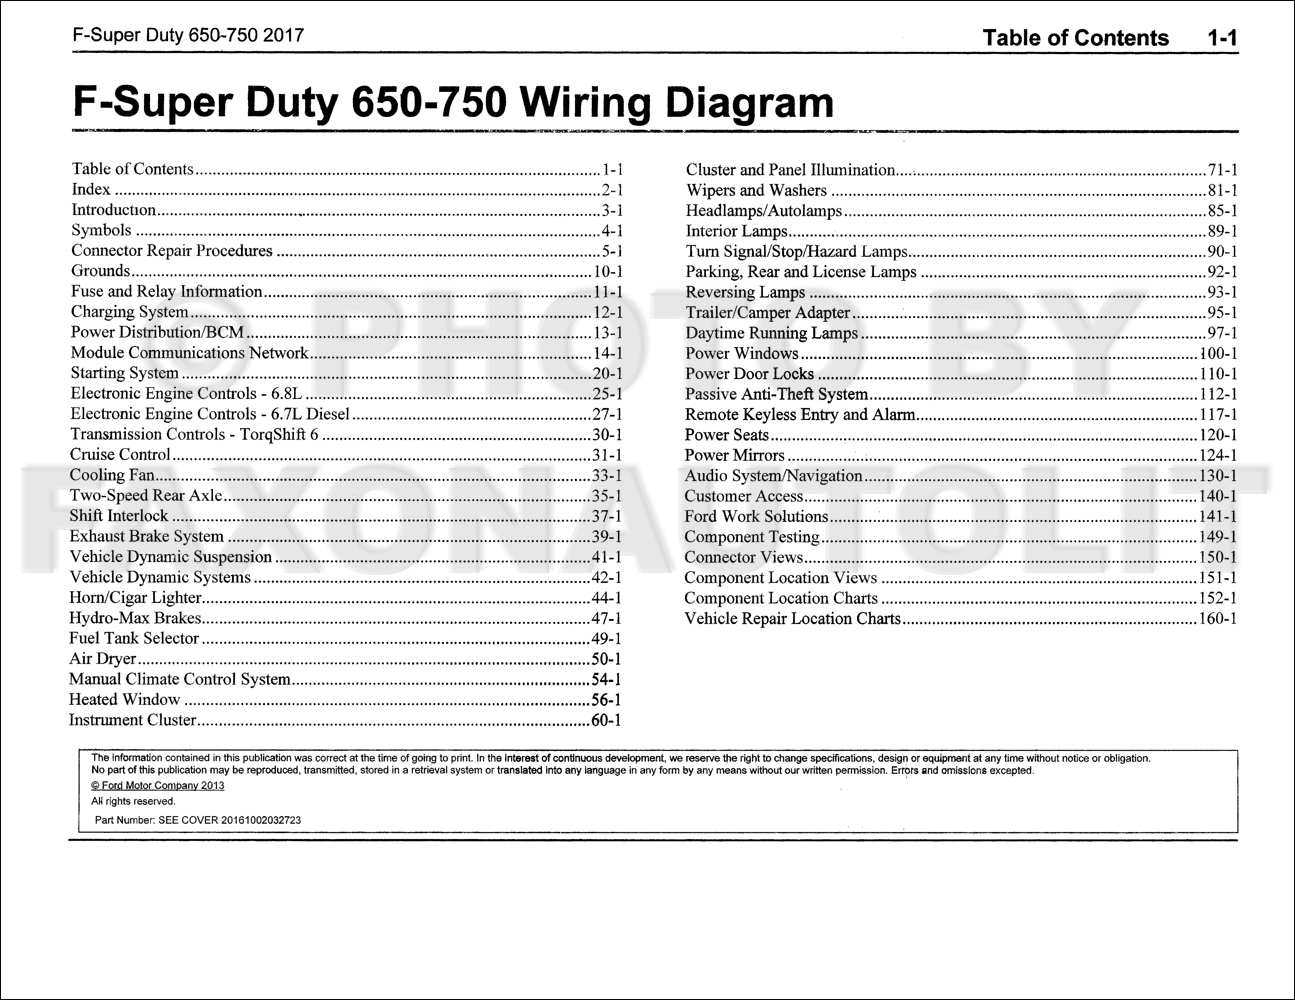 2017 Ford F-650 and F-750 Super Duty Truck Wiring Diagram Manual ...